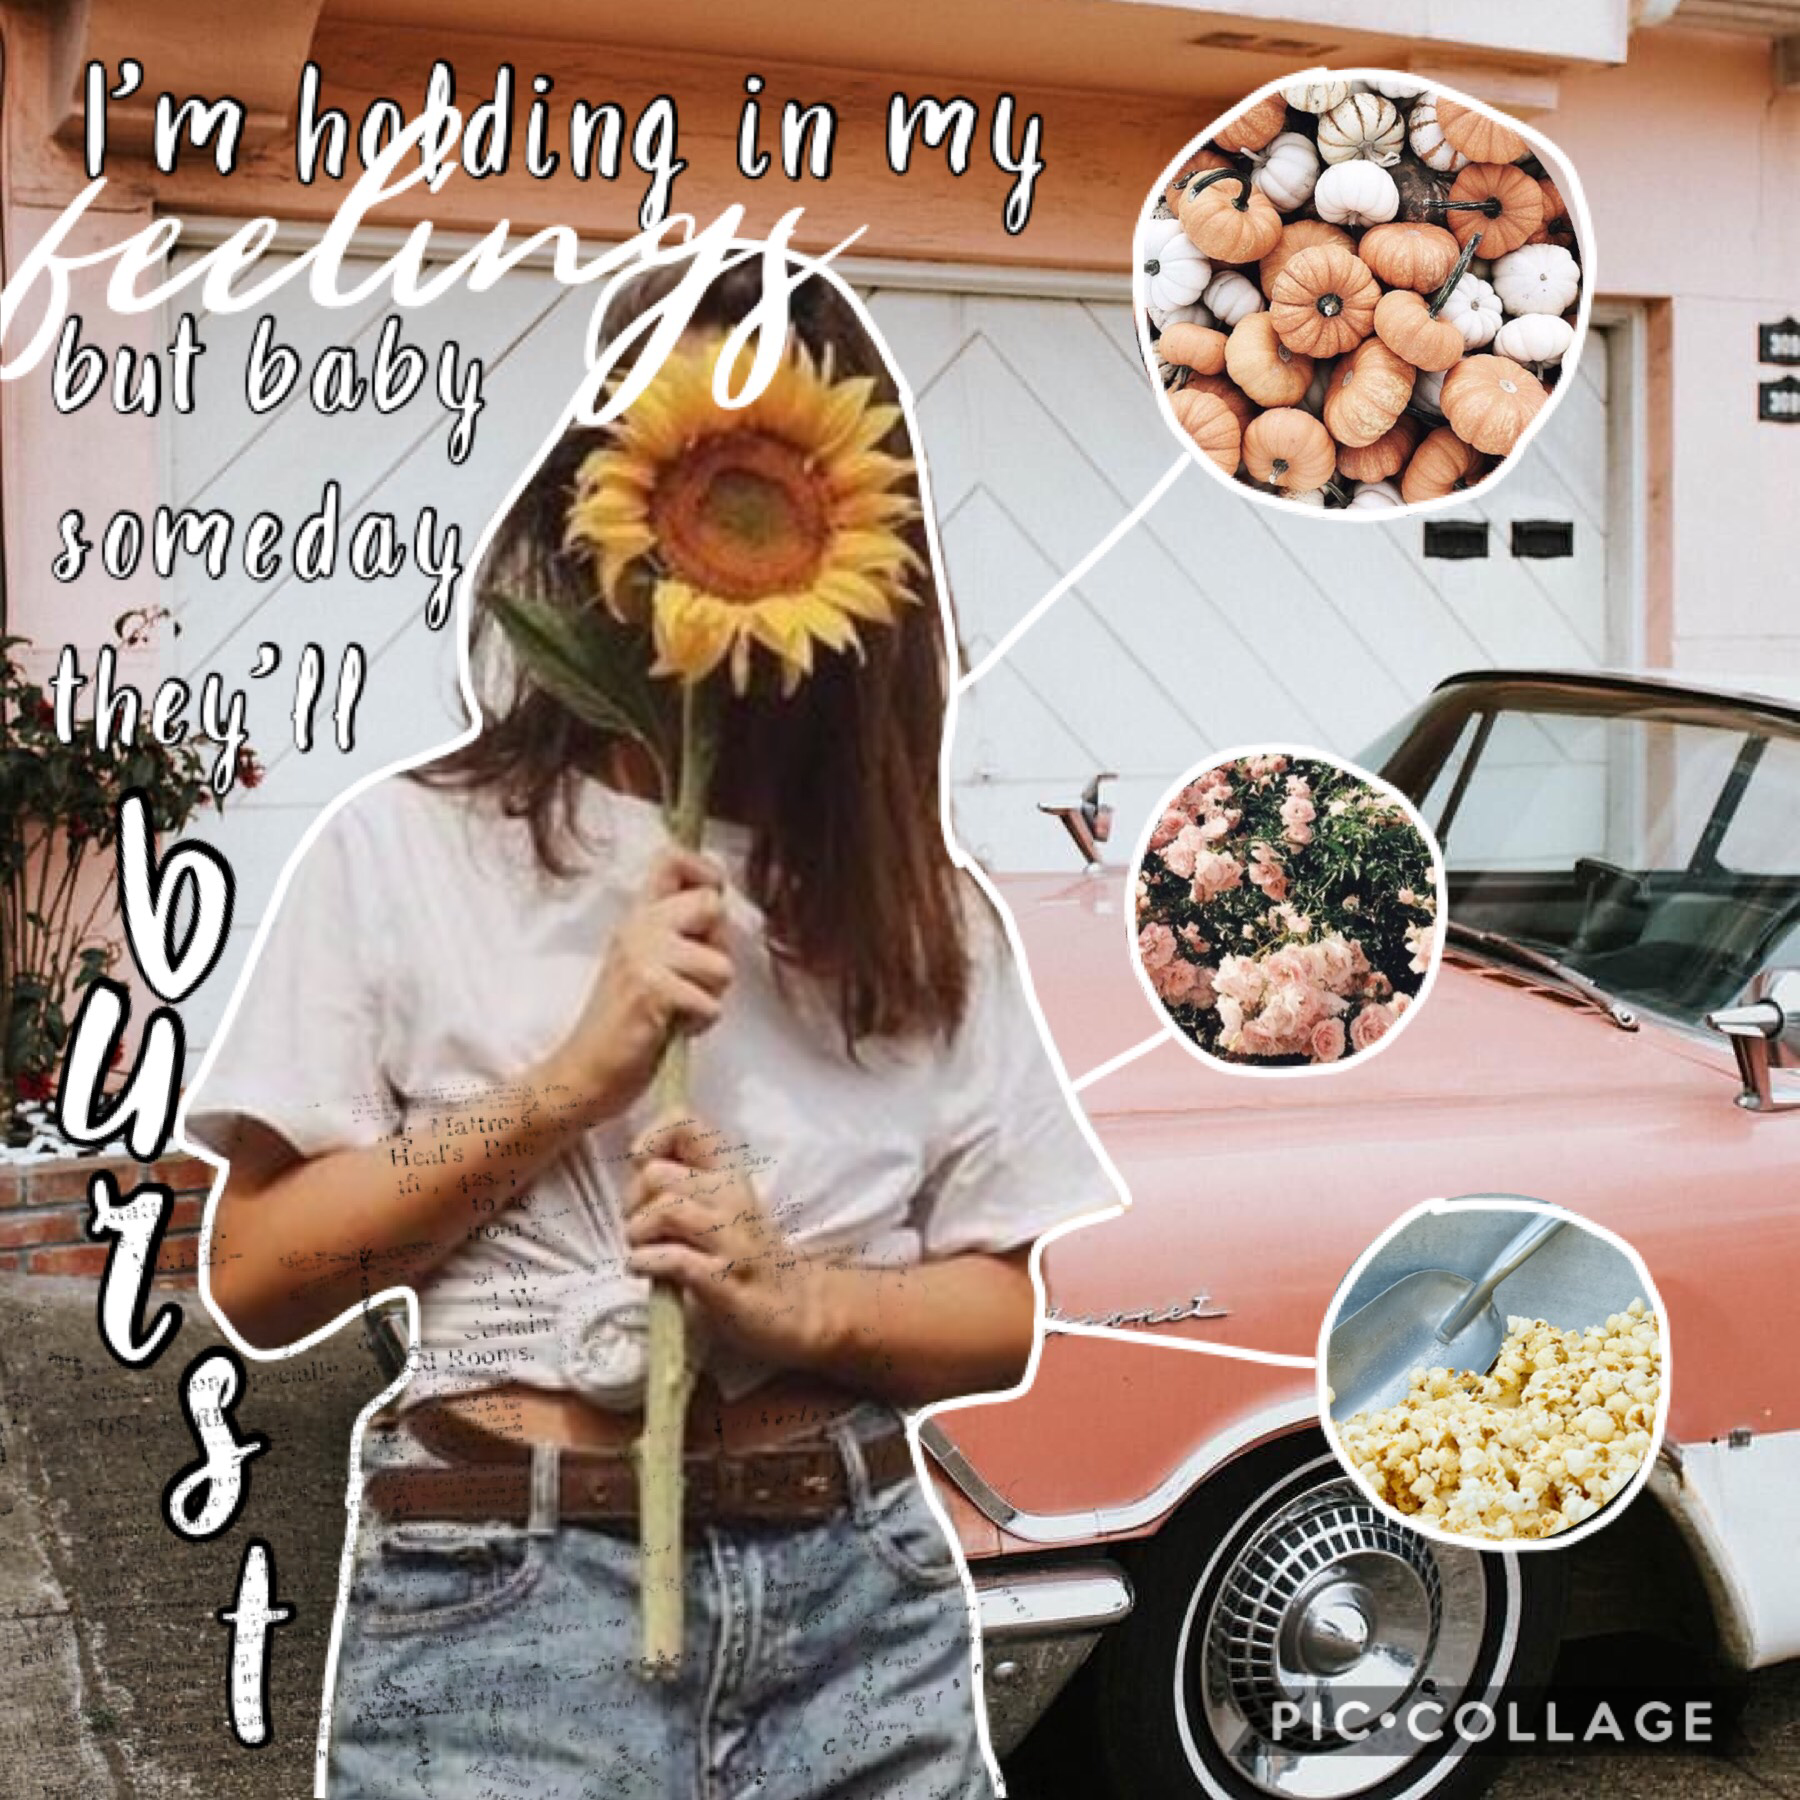 Hey guysss!!!!!!! QOTD:Have u guys ever gotten a feature?  AOTD: For me, yes, just not on this account. I havnt rlly had accounts before but I've made like 1 or 2 collages and posted them lol.